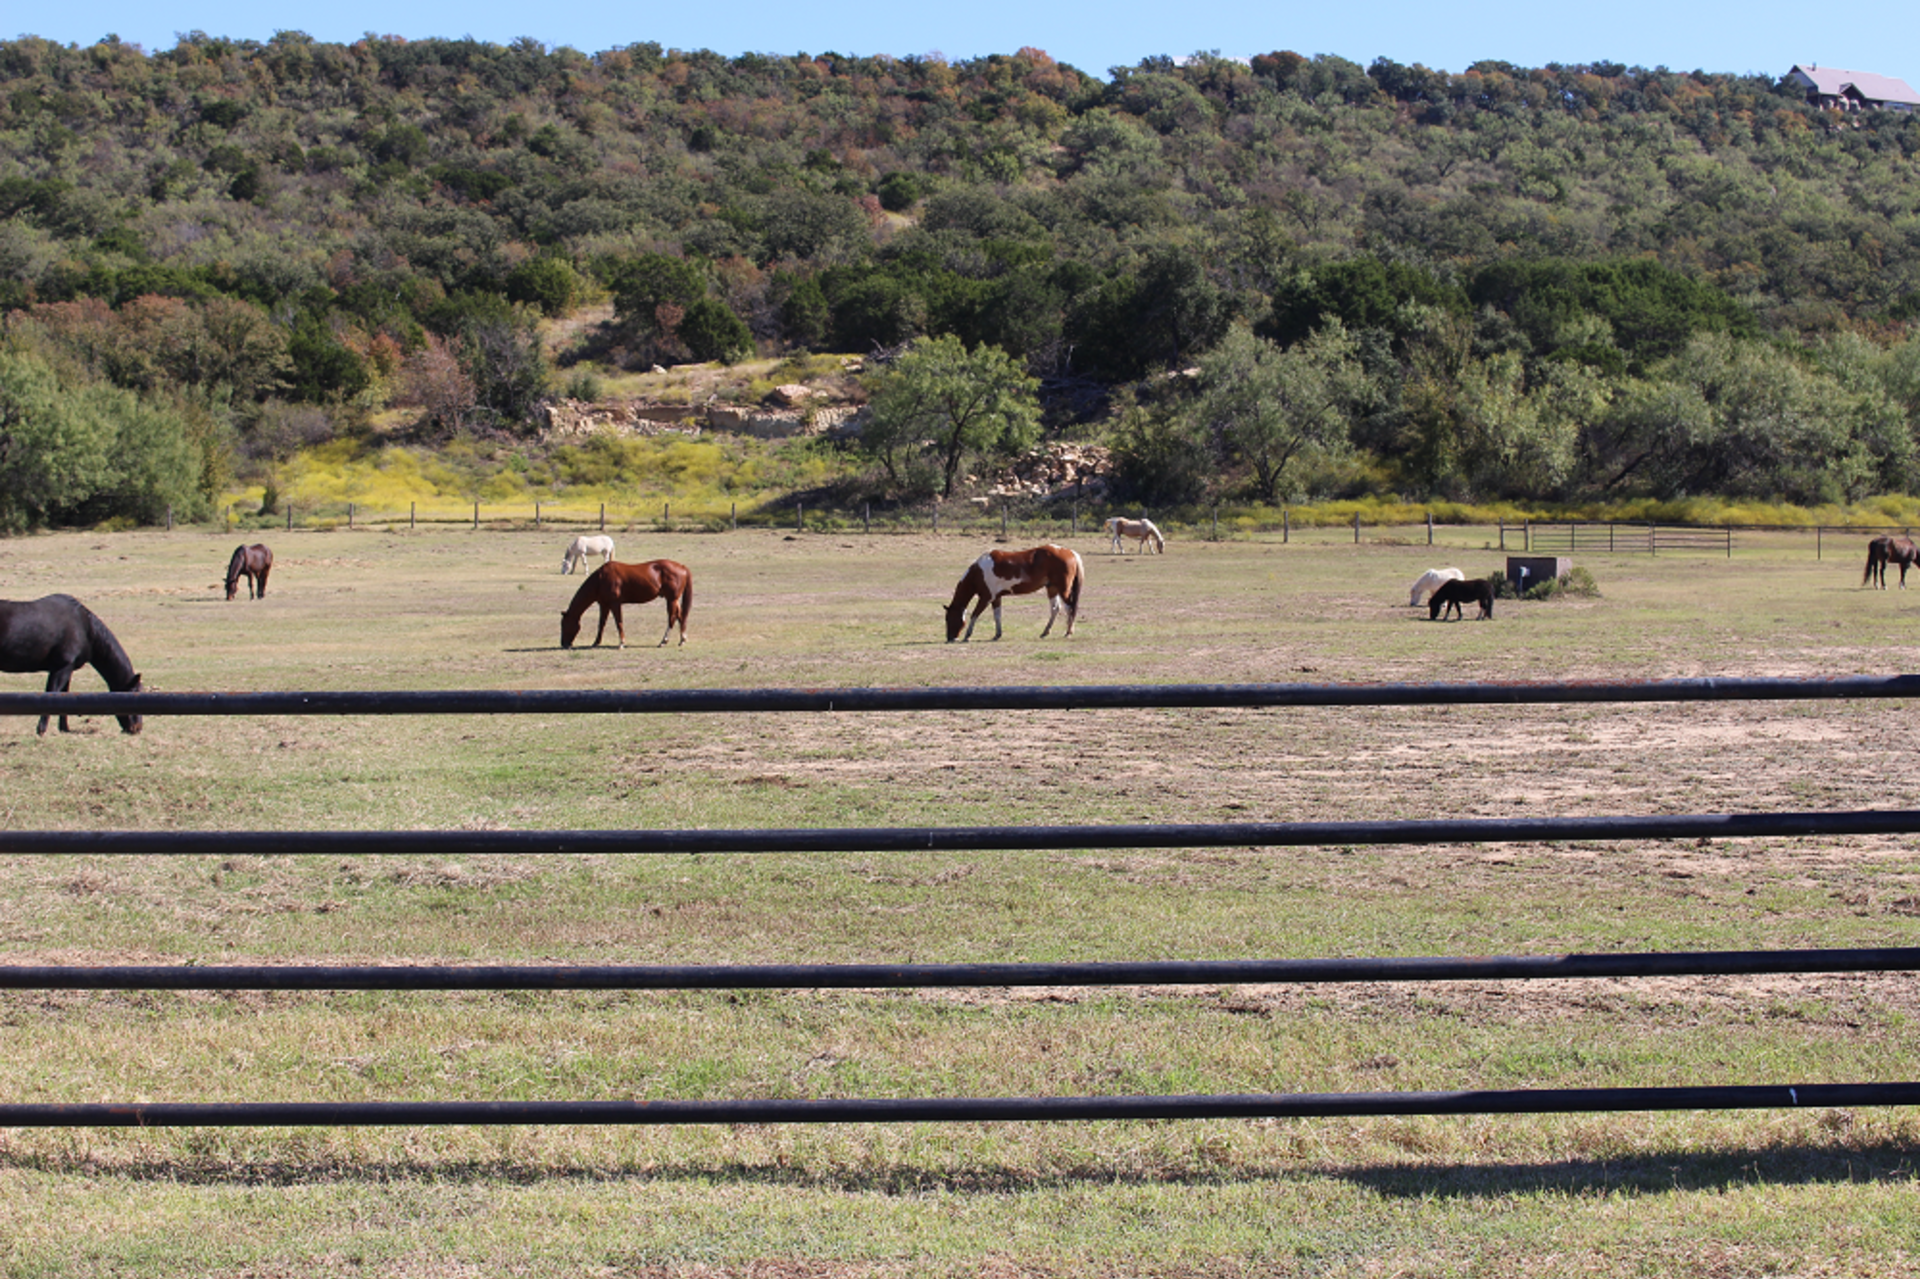 Ready for your OWN Texas Ranch Home?